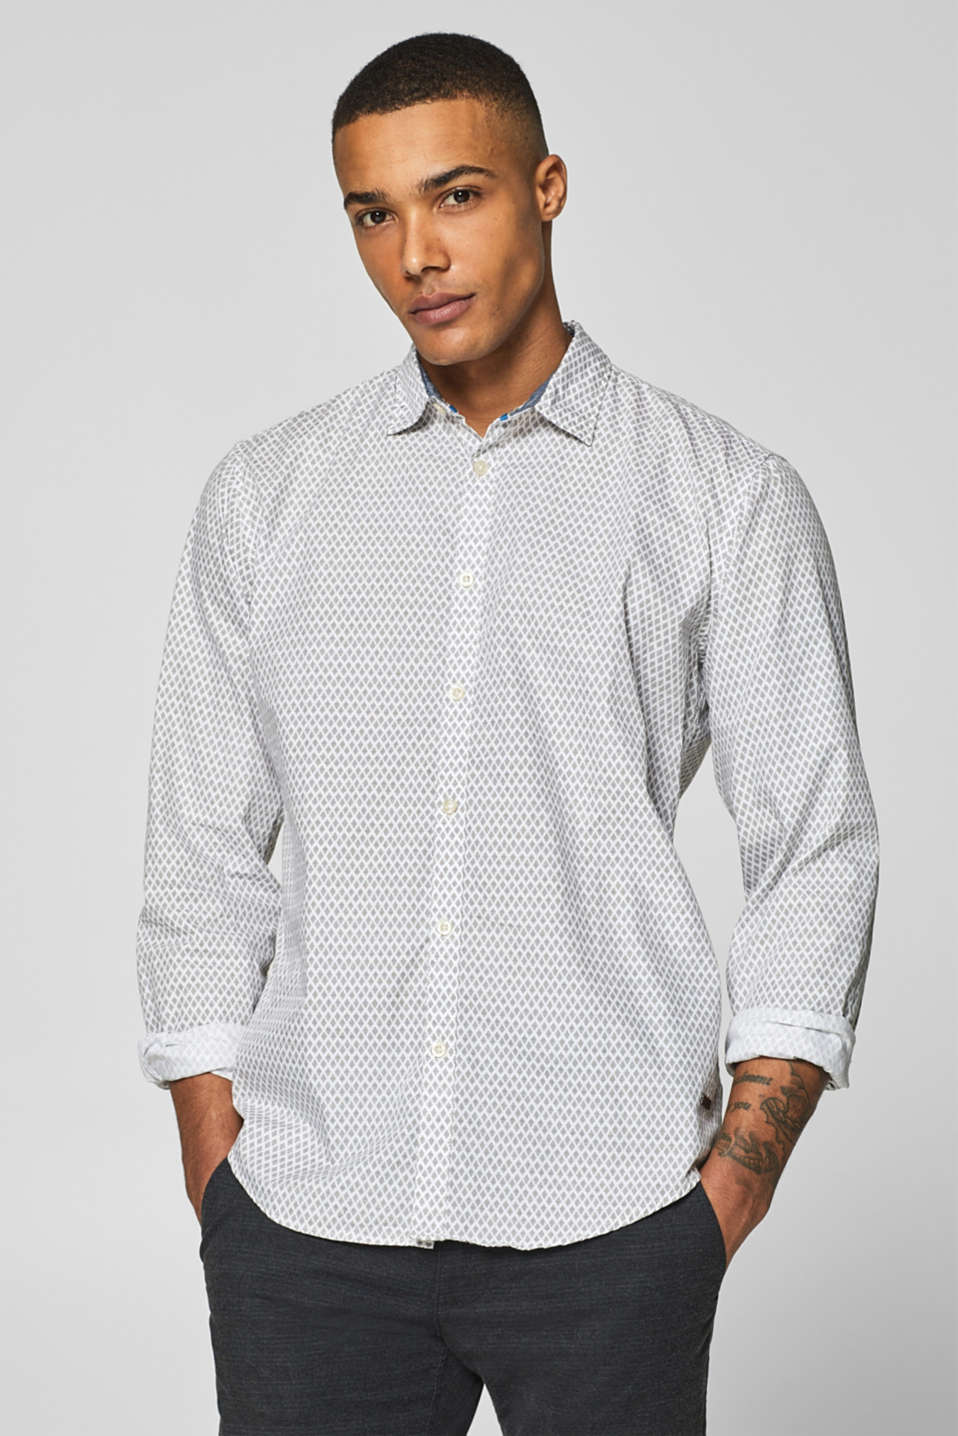 edc - Shirt with a minimalist pattern, 100% cotton